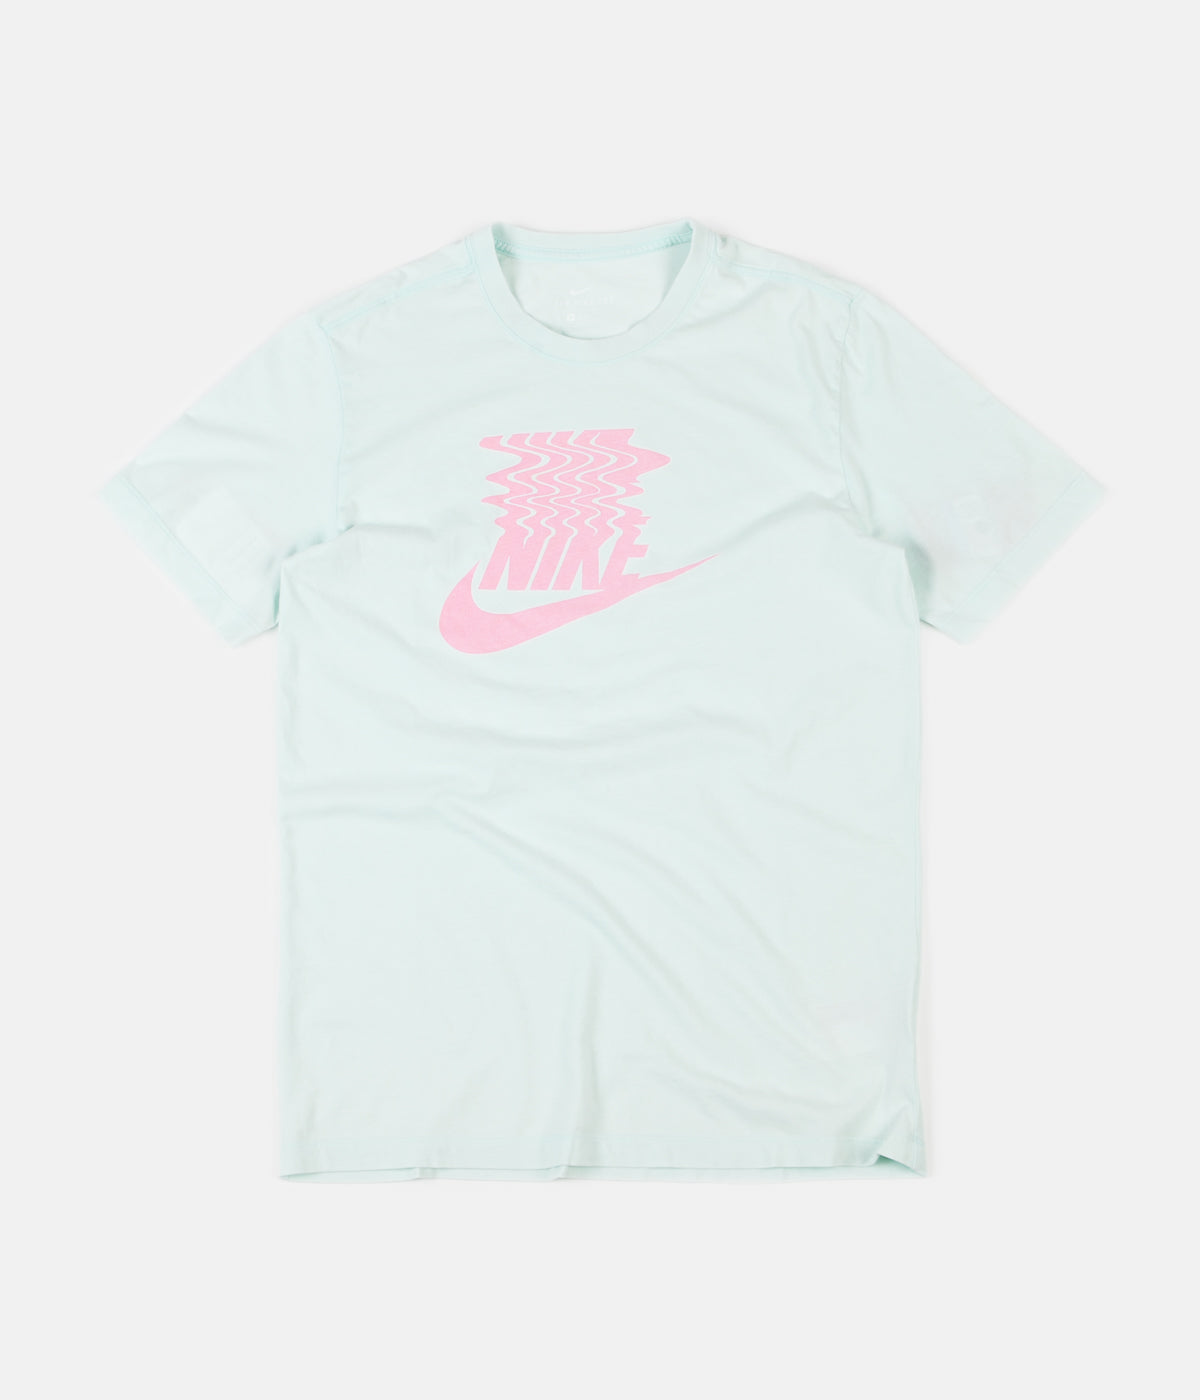 bcc6c96561f Nike Seasonal Statement T-Shirt - Teal Tint | Always in Colour